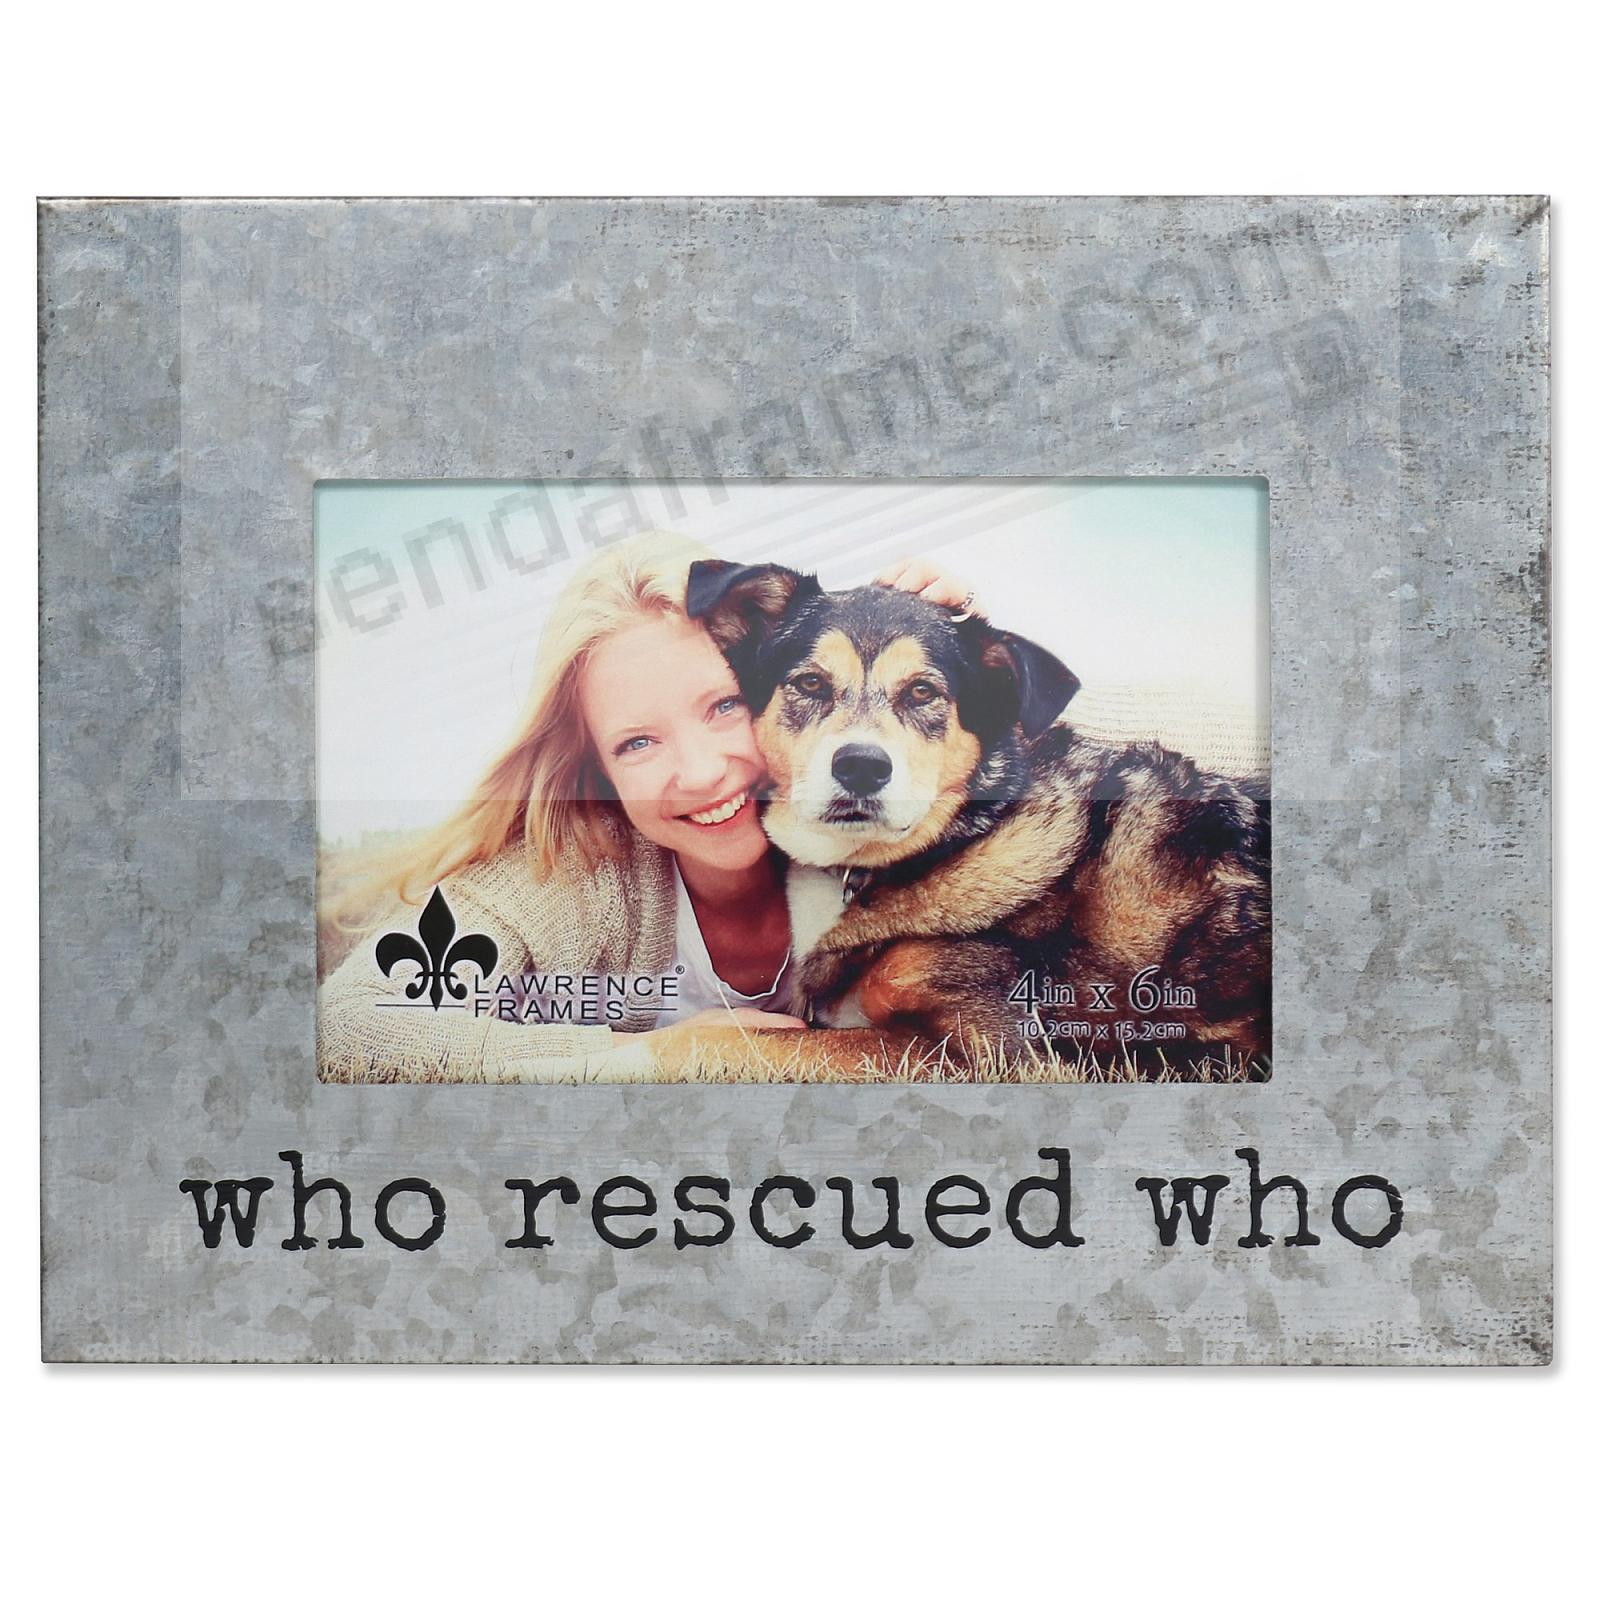 WHO RESCUED WHO by Lawrence®